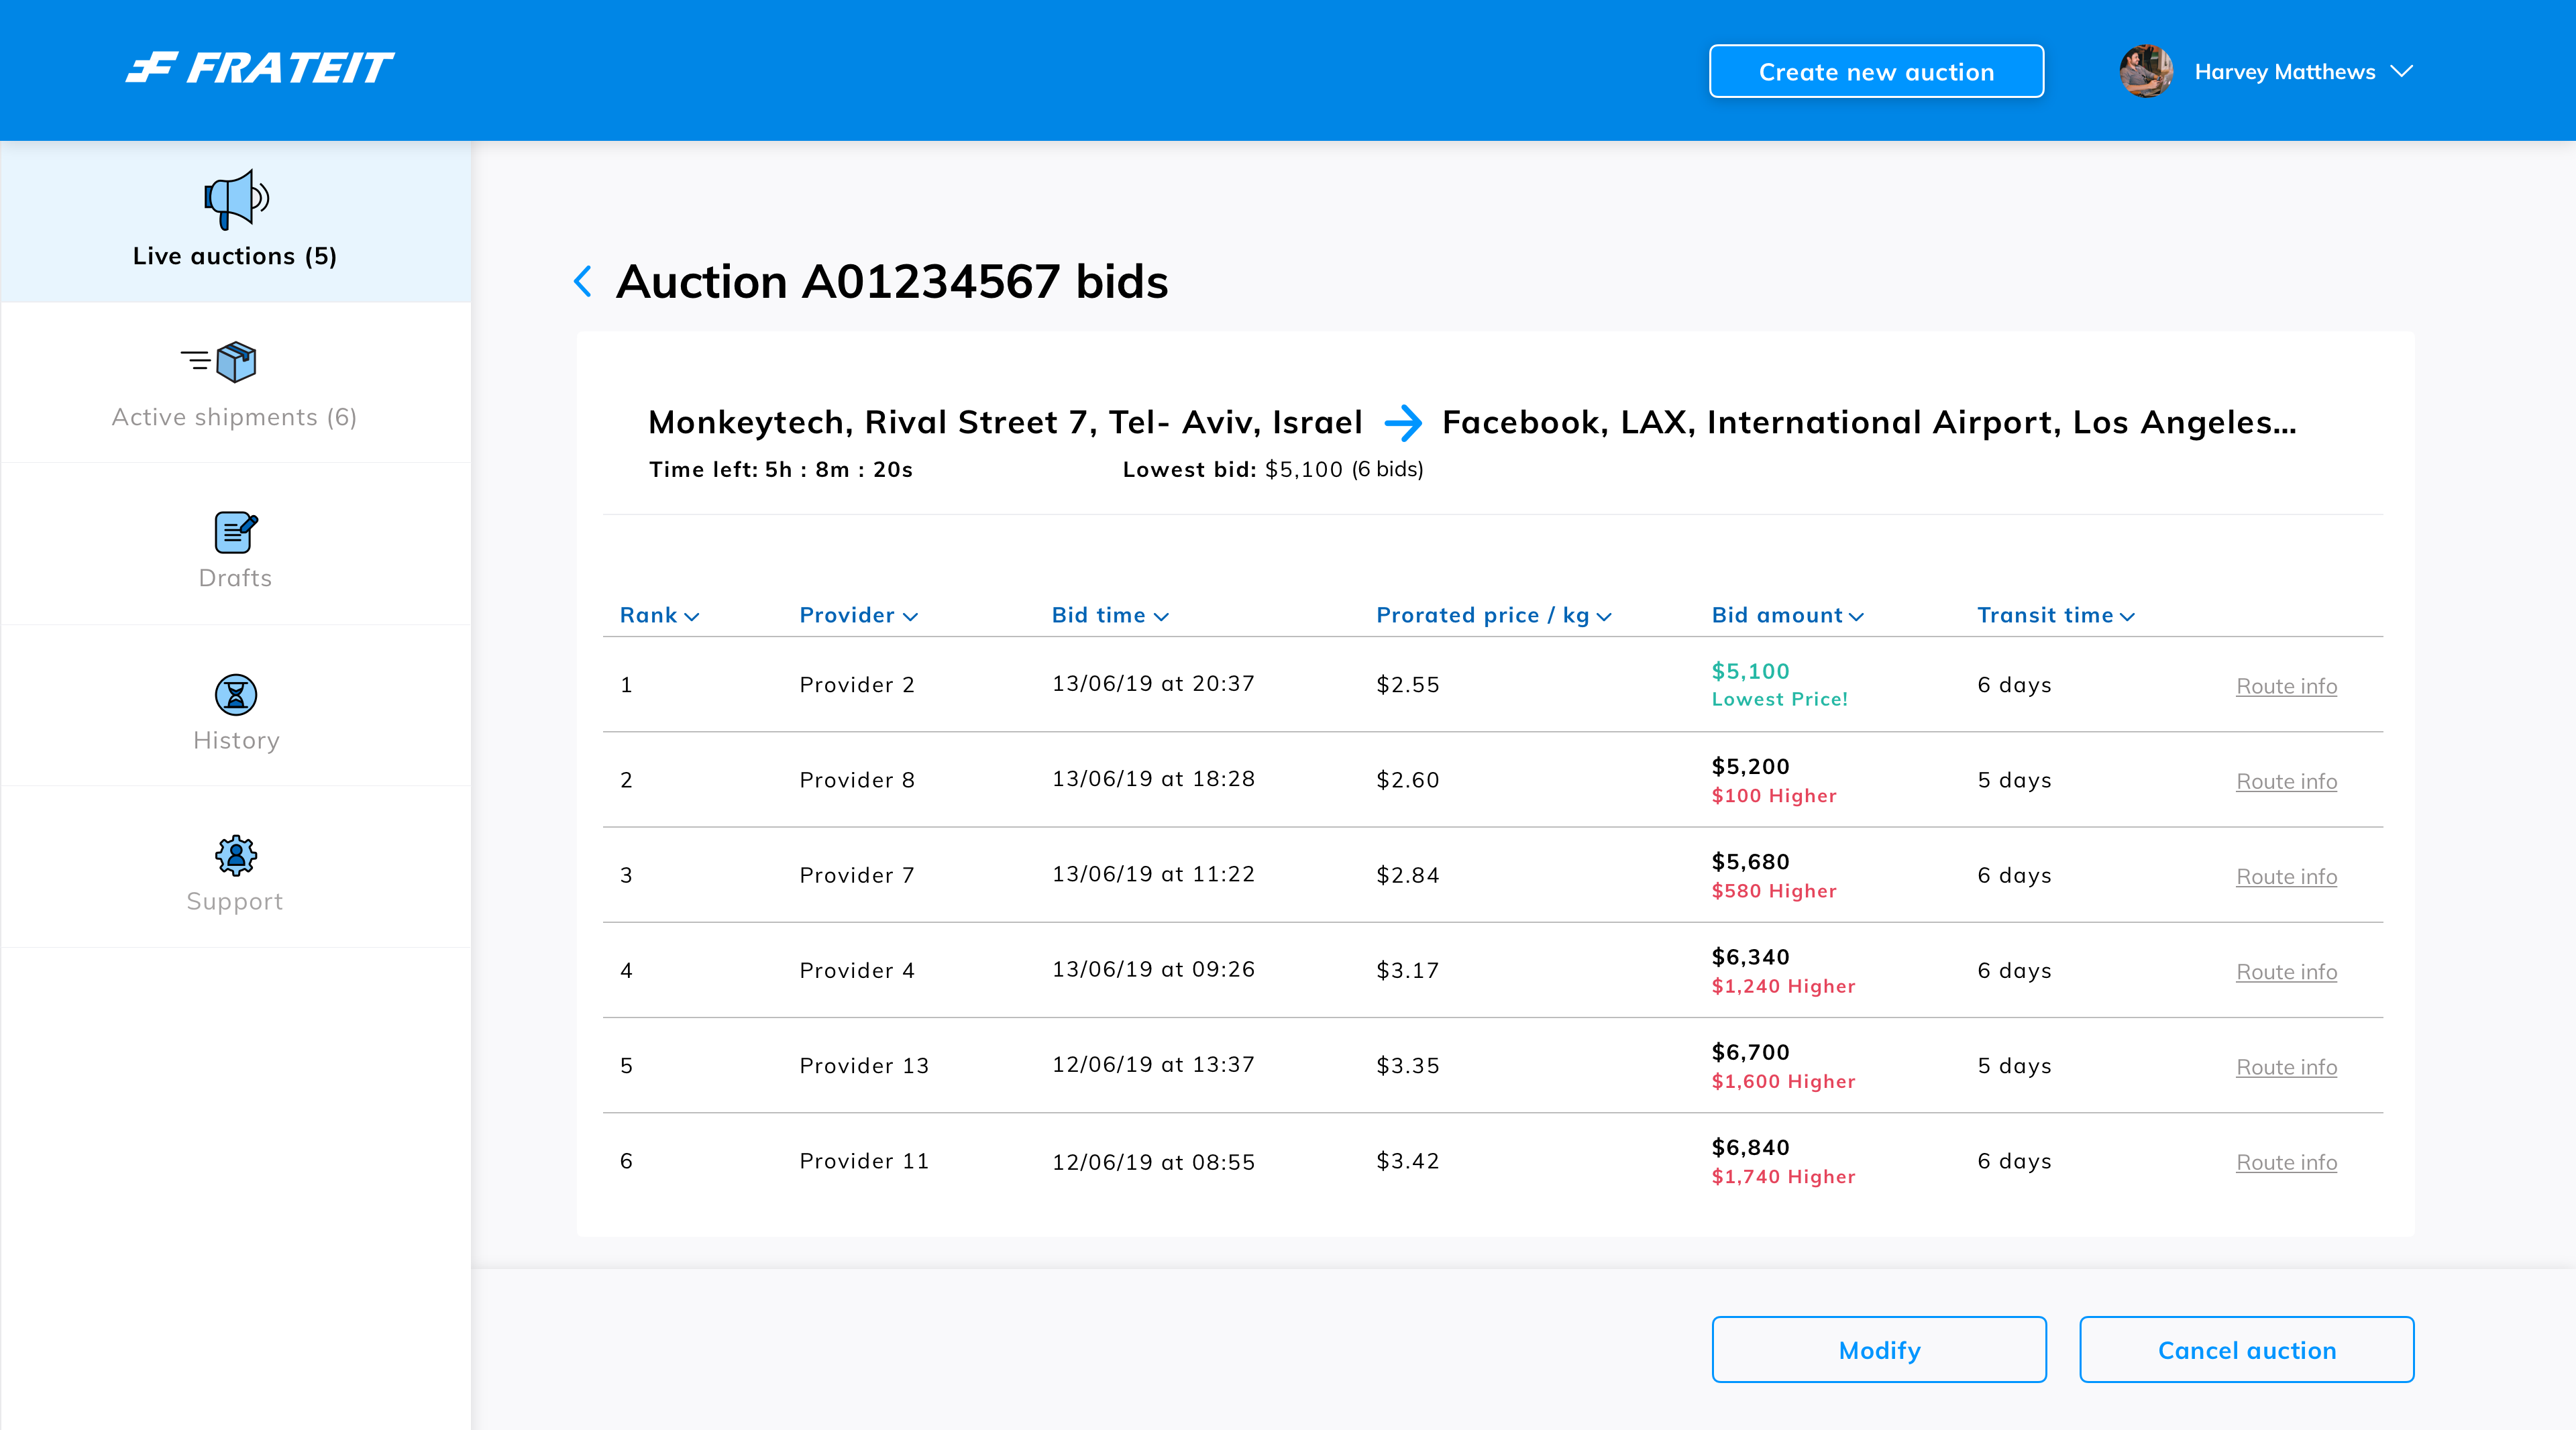 4.3a_client_live auctions_bids